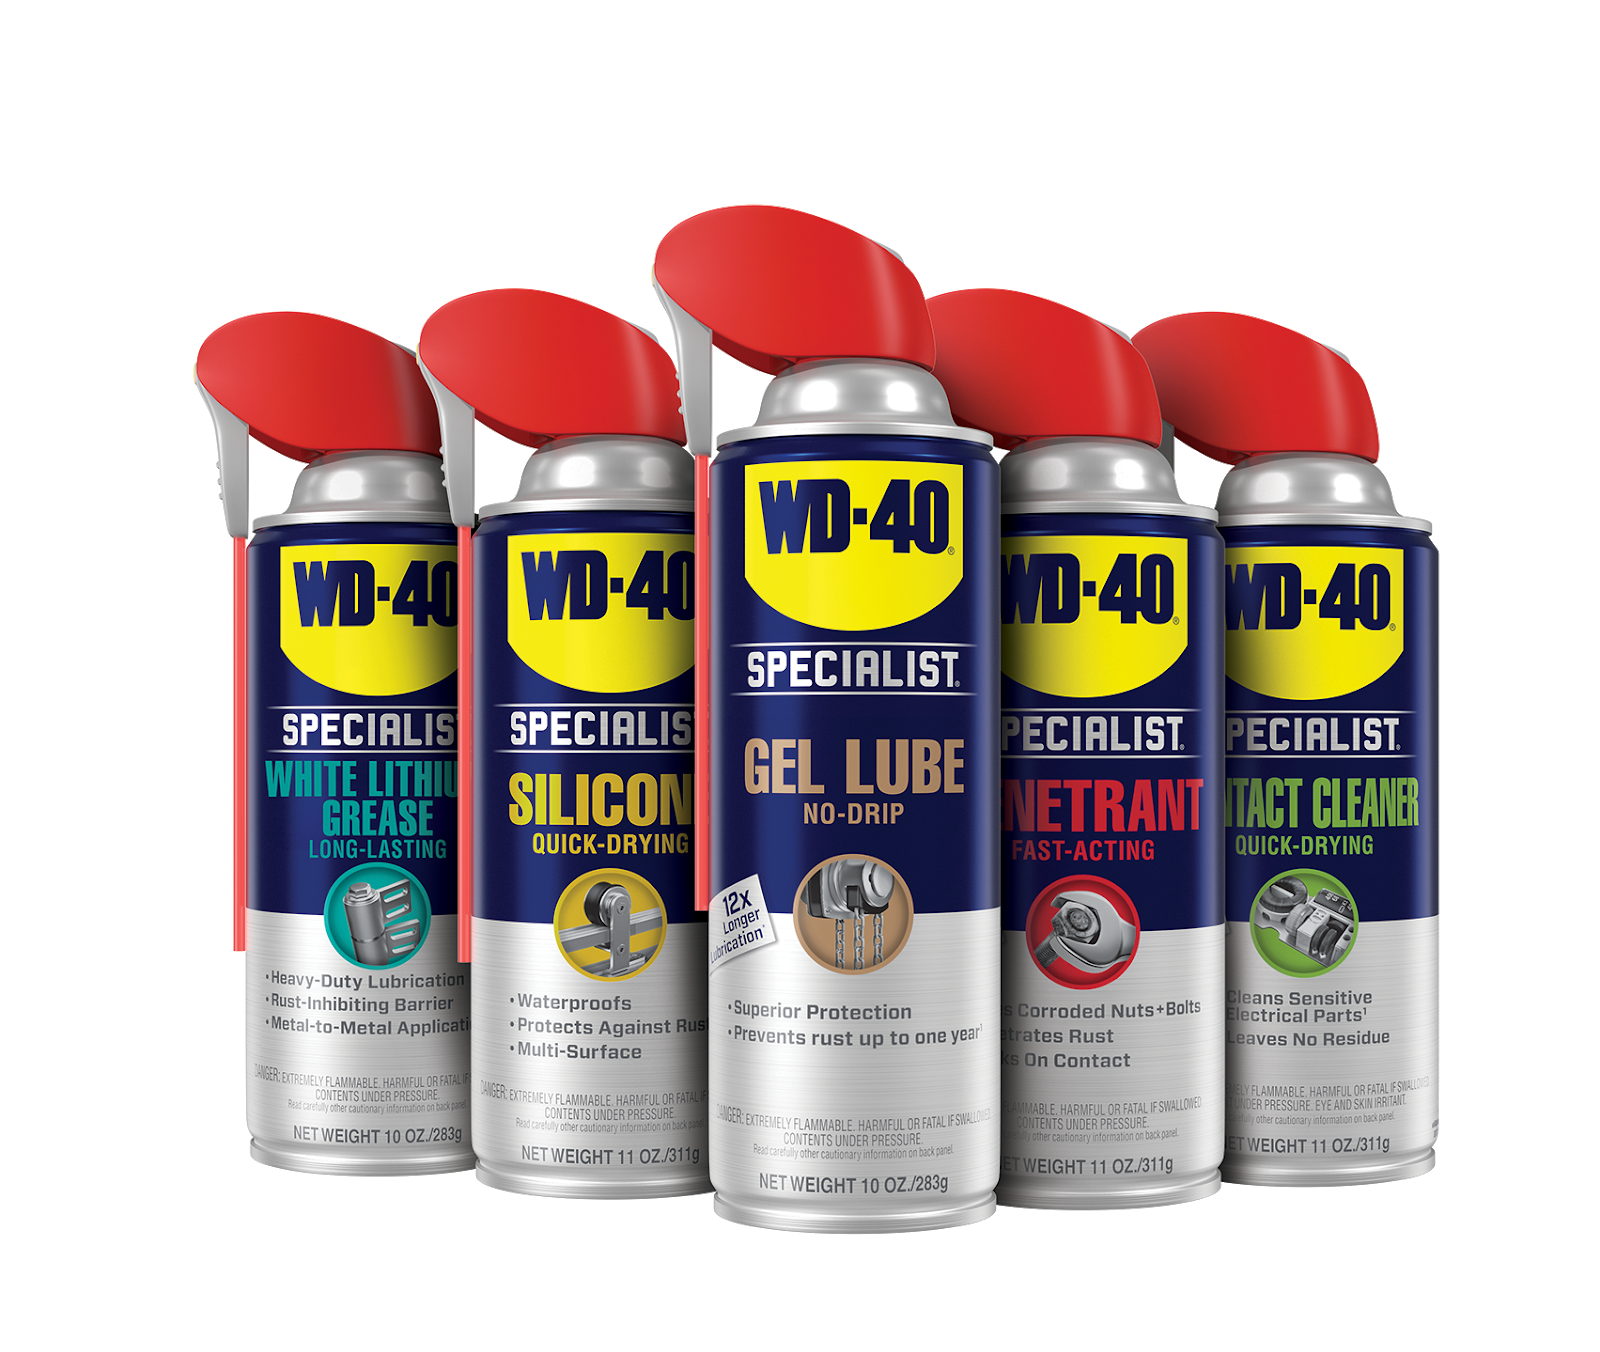 Wd 40 Specialist Line Lands Smoothly On Packaging Of The World Creative Package Design Gallery